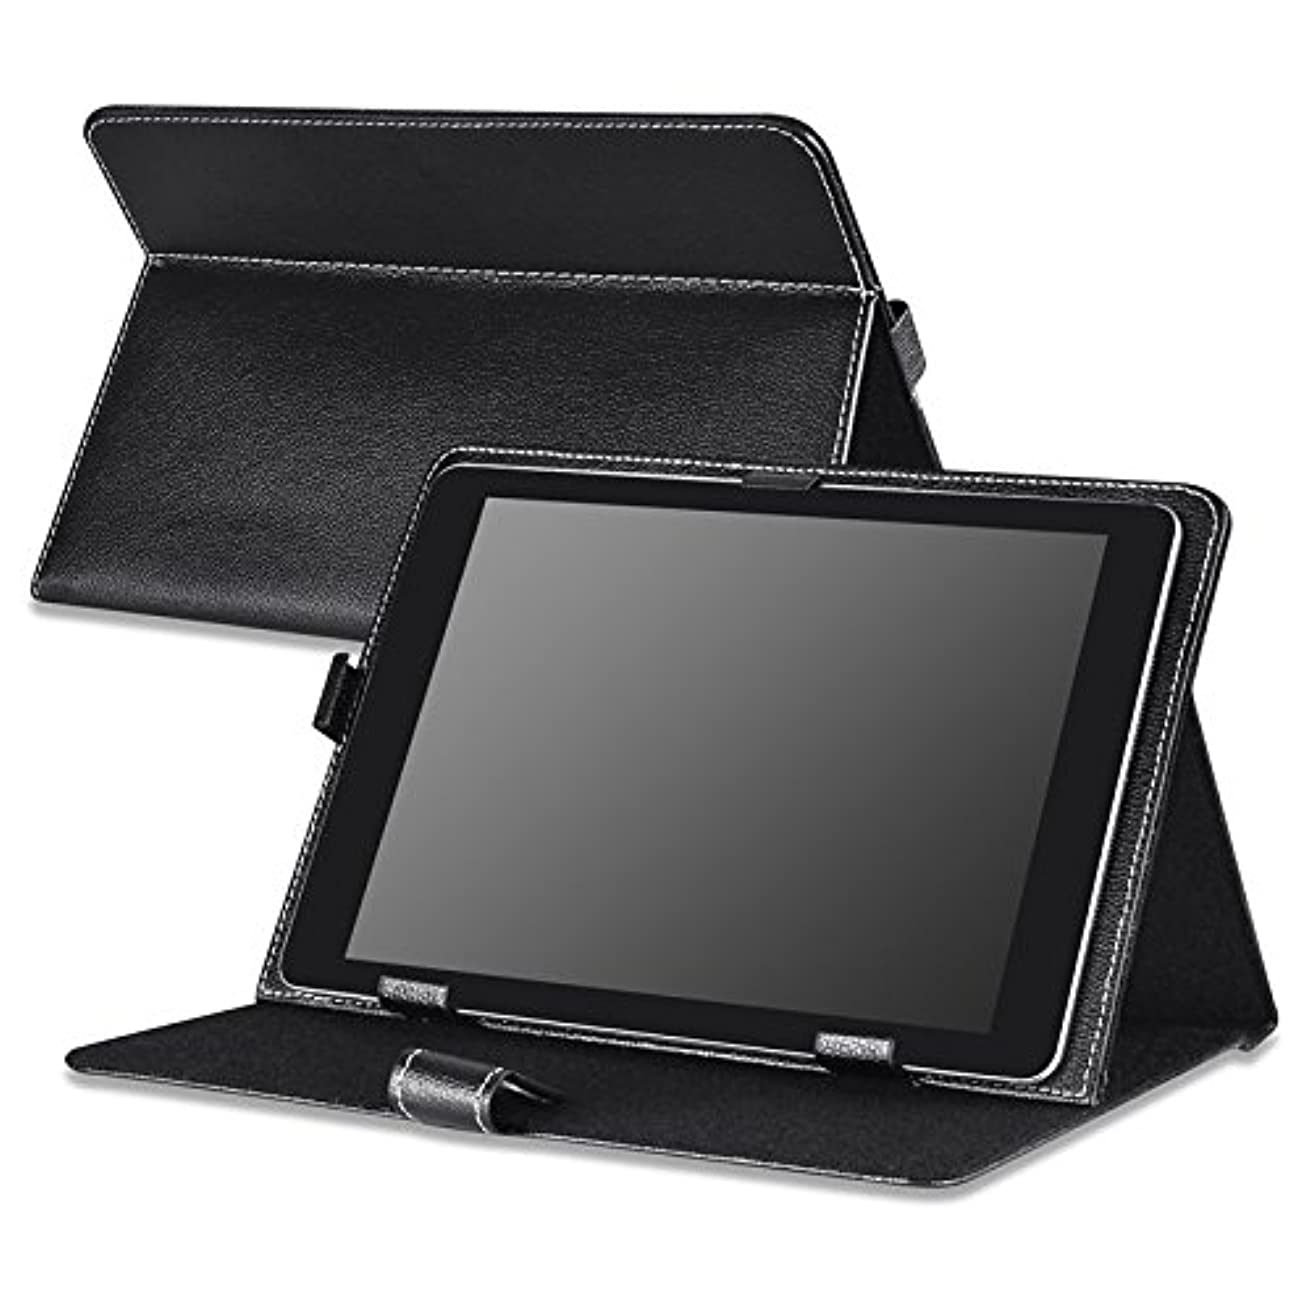 Insten Heavy-duty Protective High Impact Durable Horizontal Stand Leather Case compatible with Apple iPad 9.7